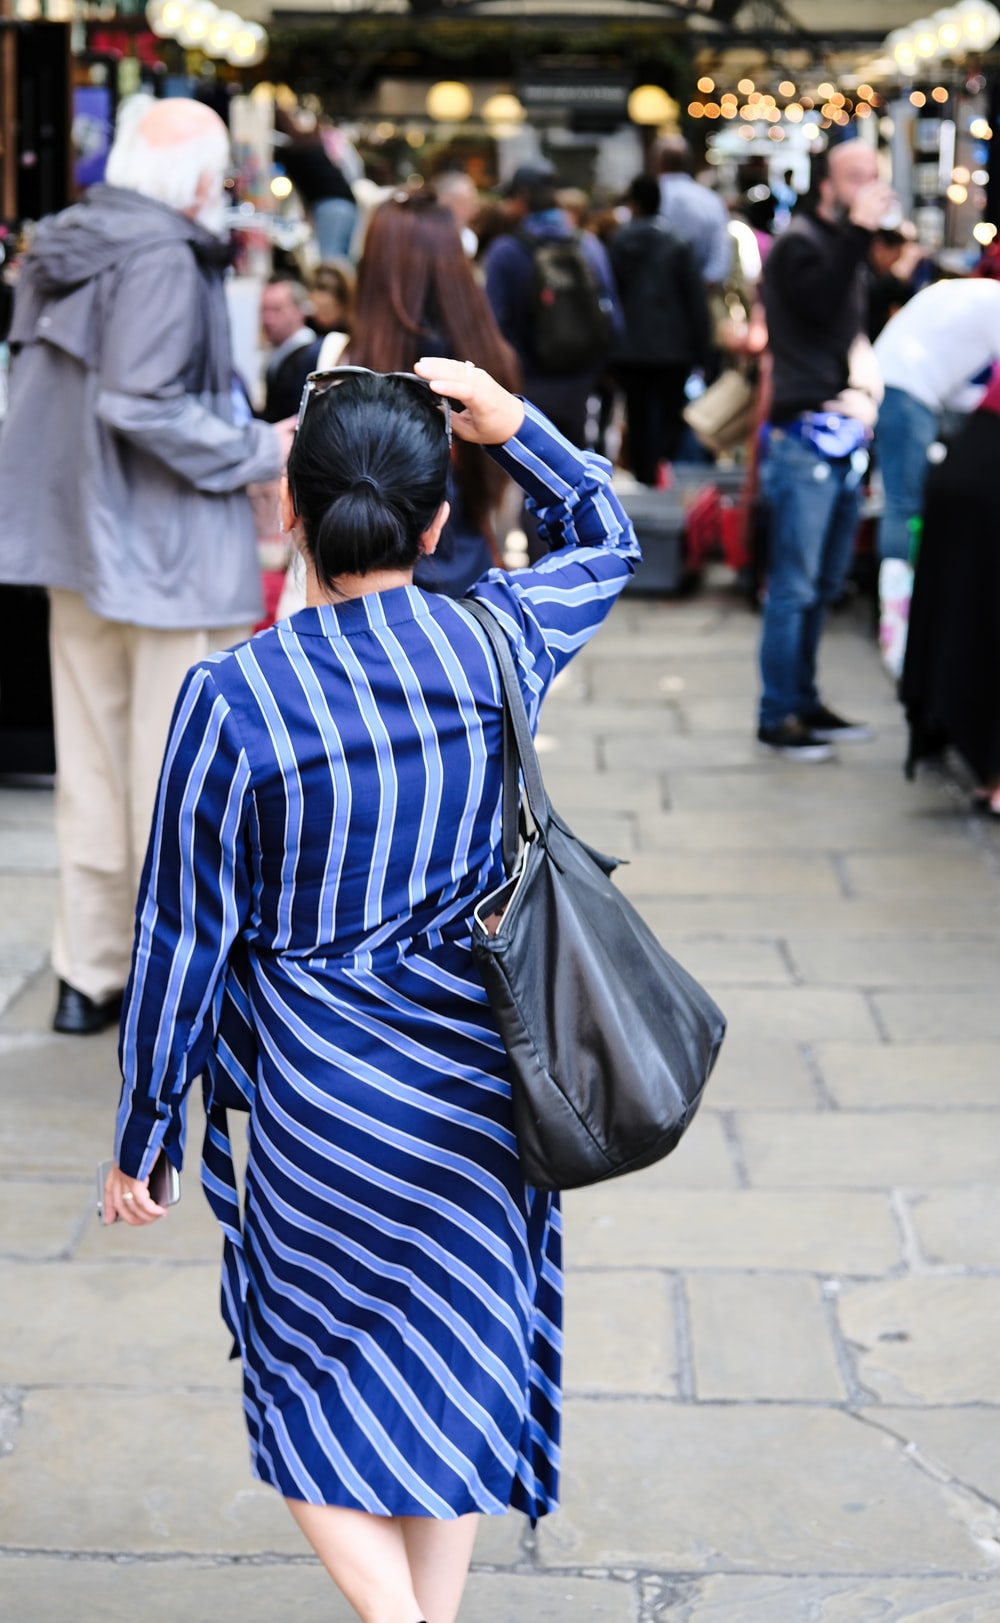 woman in striped dress walking near building